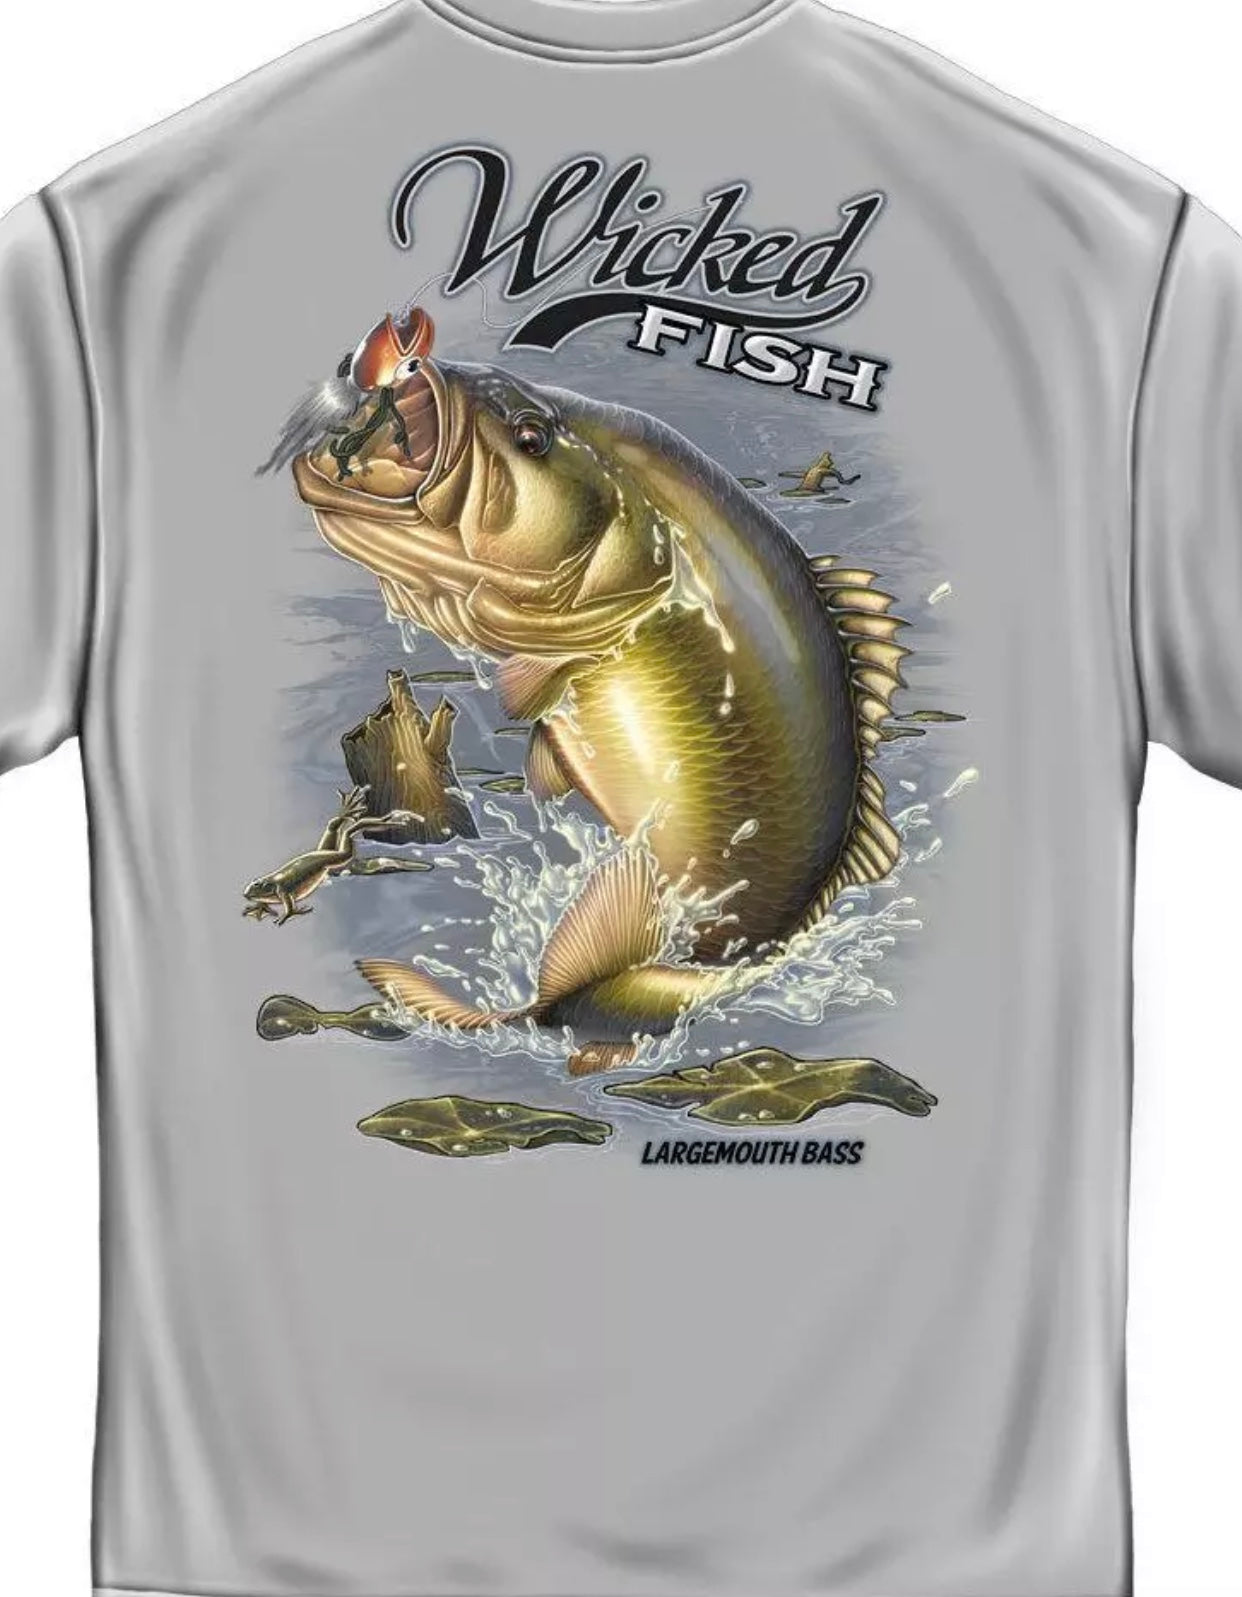 Large Mouth Bass Fishing T-Shirt - The Wall Kids, Inc.